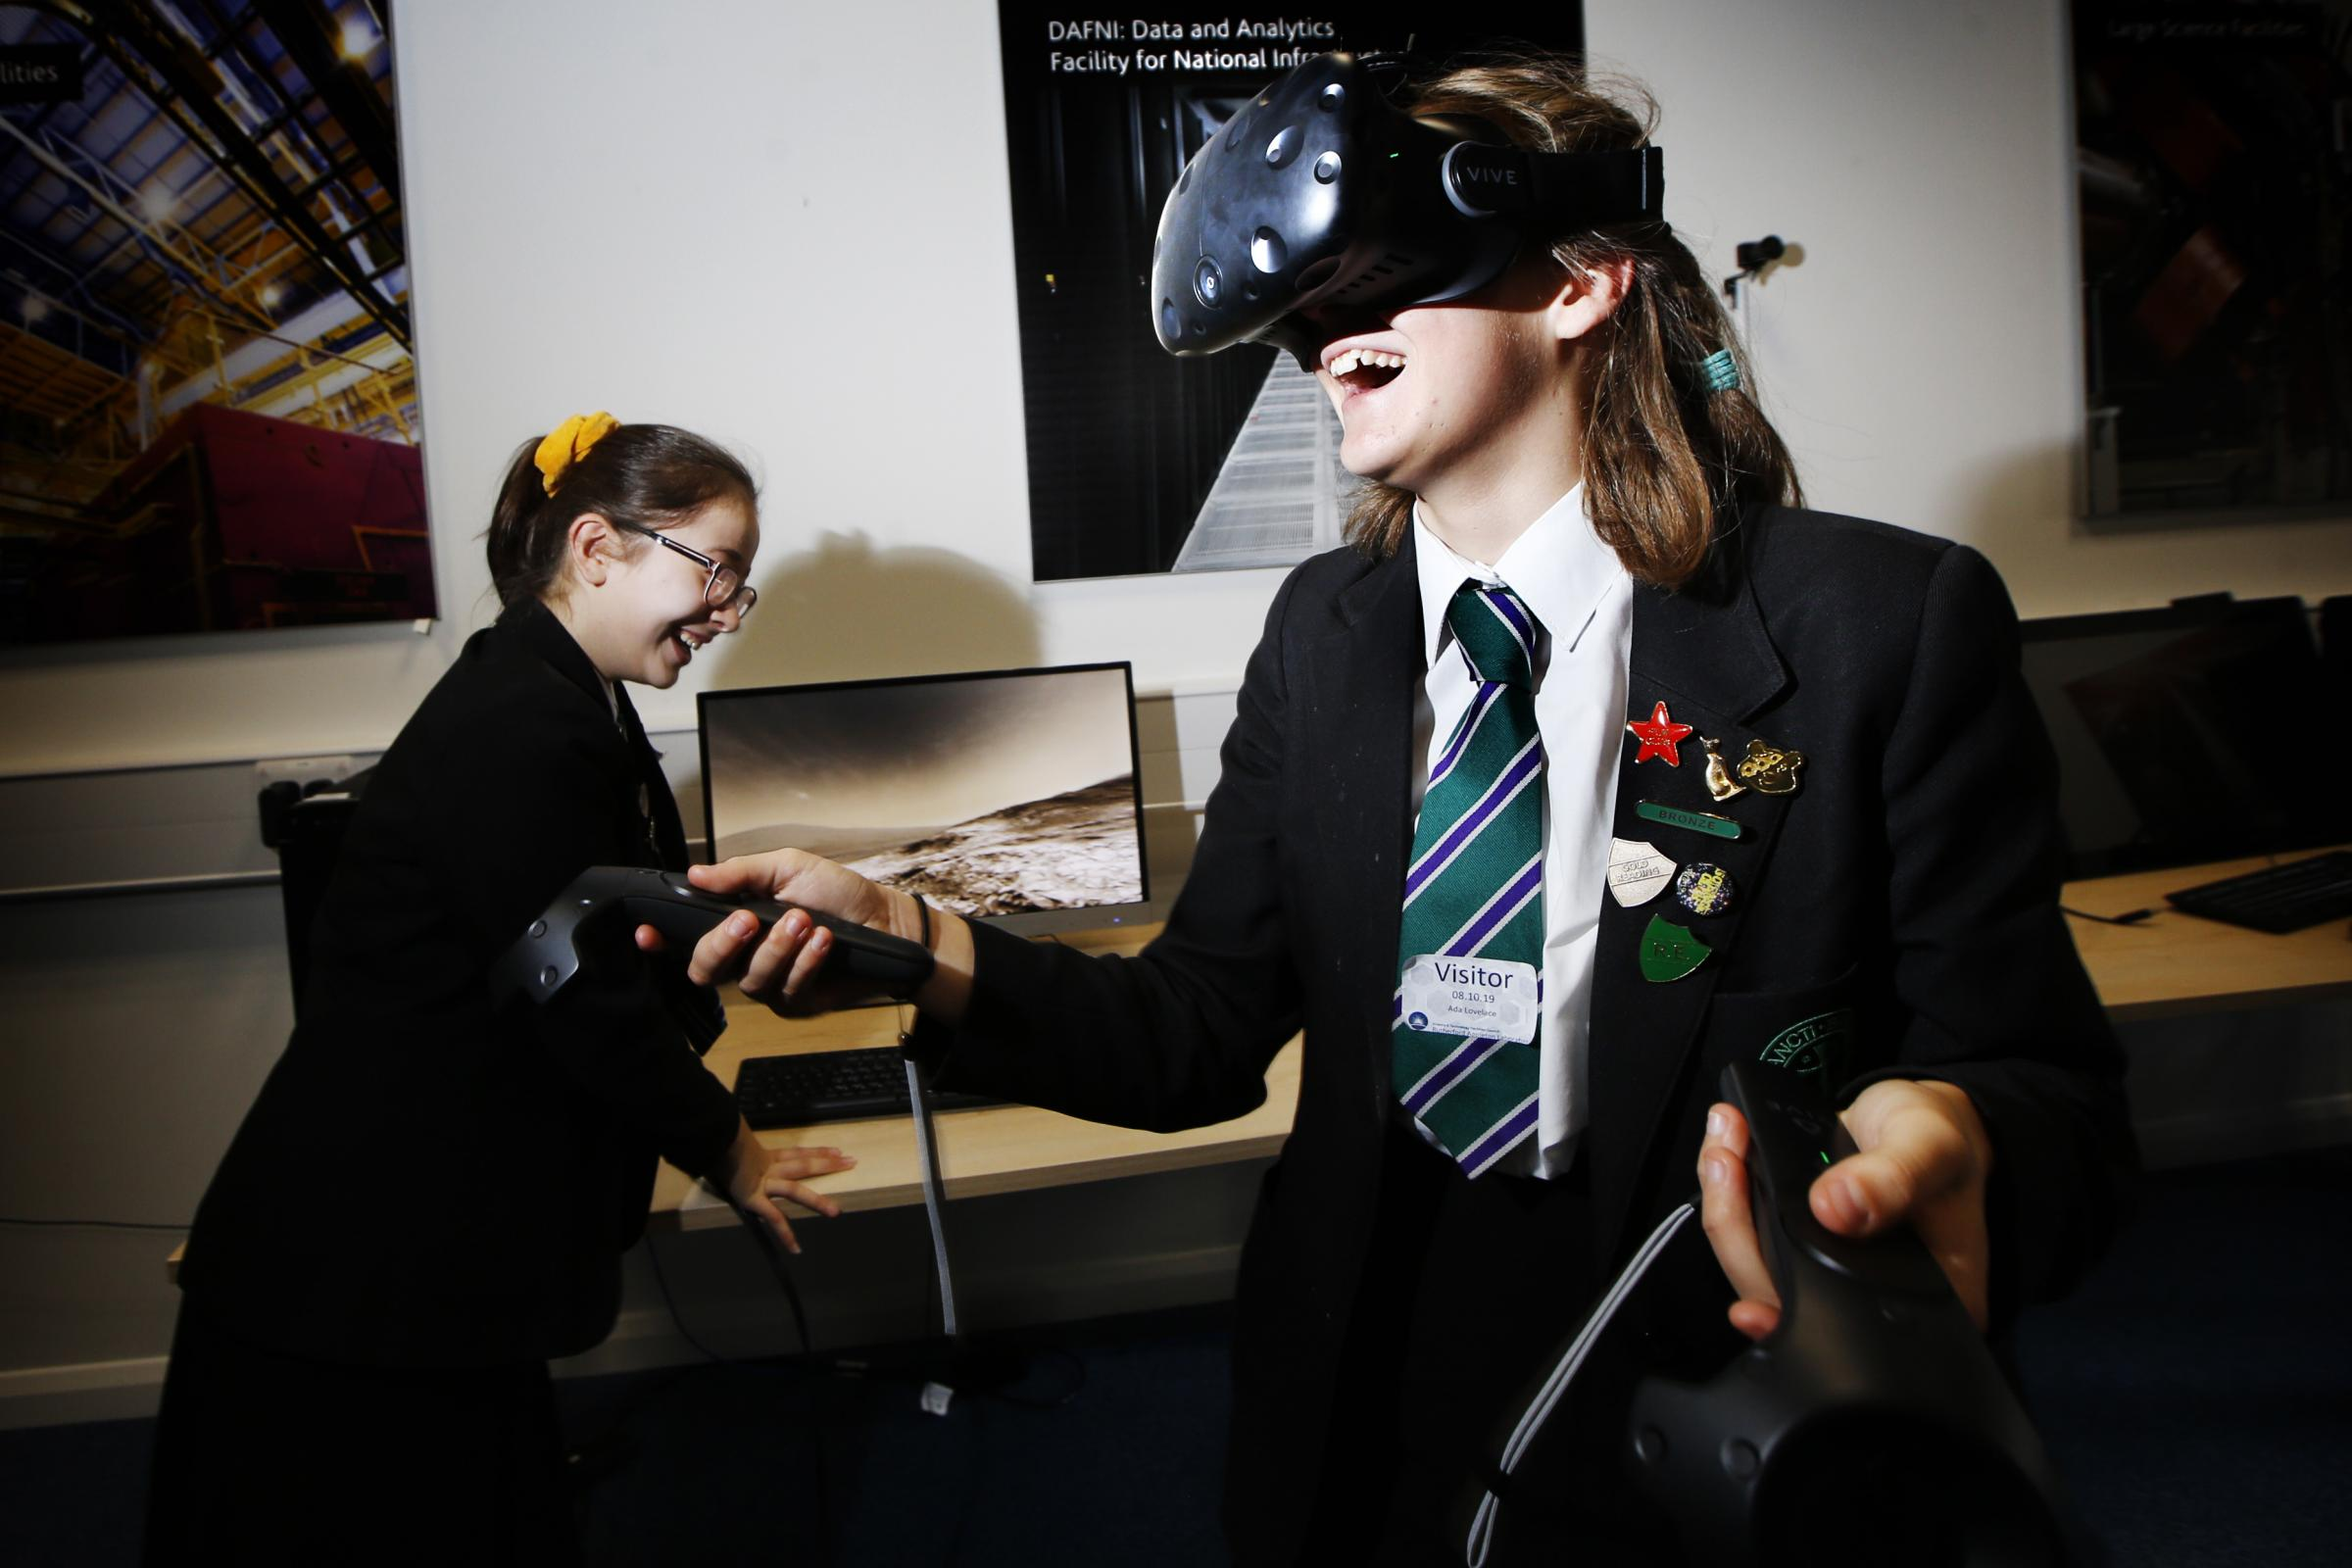 School event at Rutherford Appleton Laboratory for Ada Lovelace Day